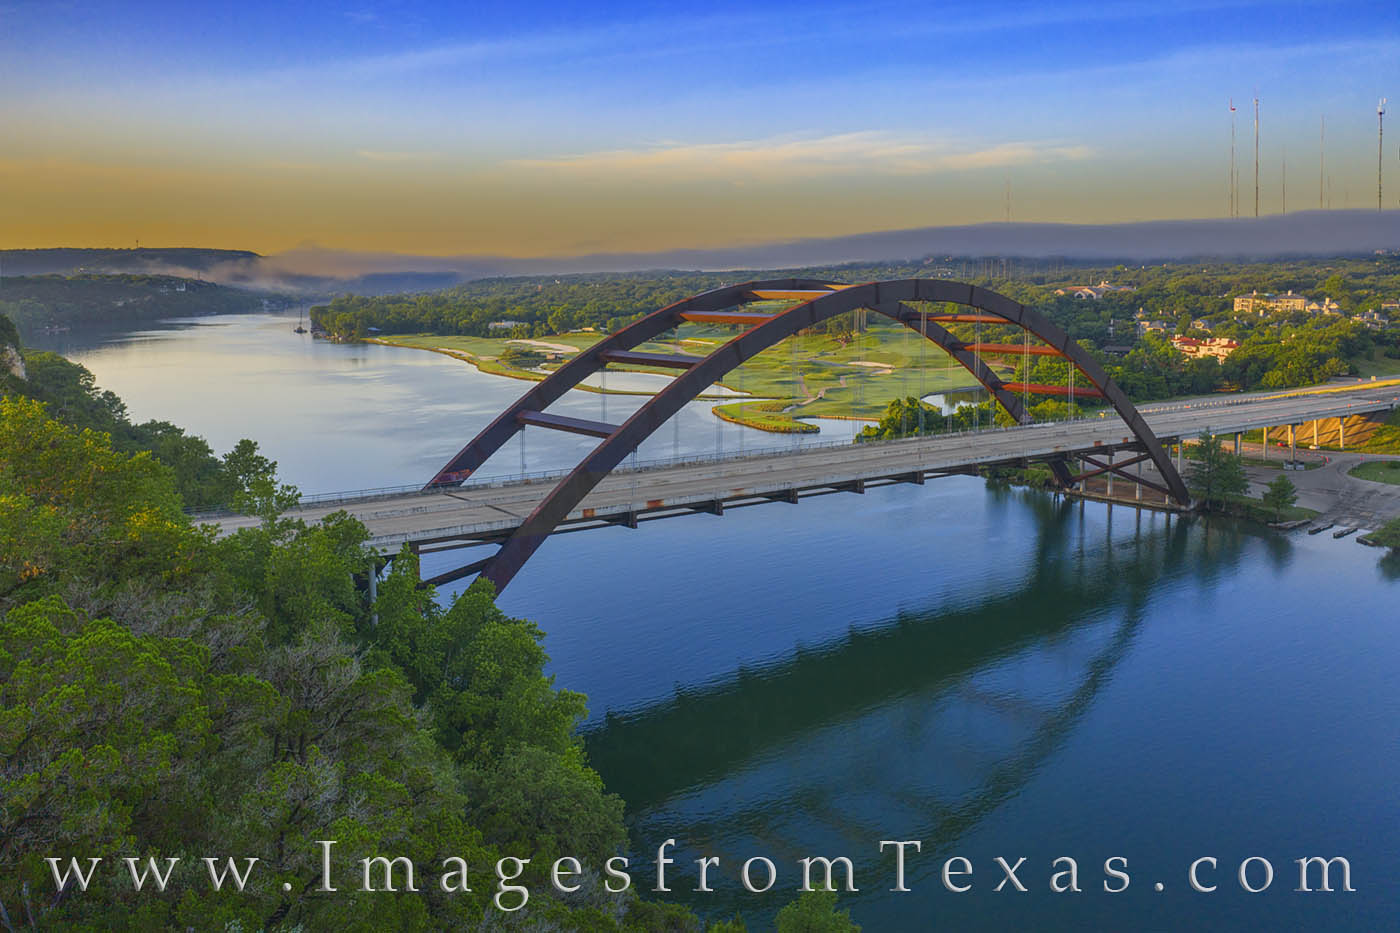 360 Bridge, drone, aerial, pennybacker bridge, sunrise, fog, clouds, colorado river, photo